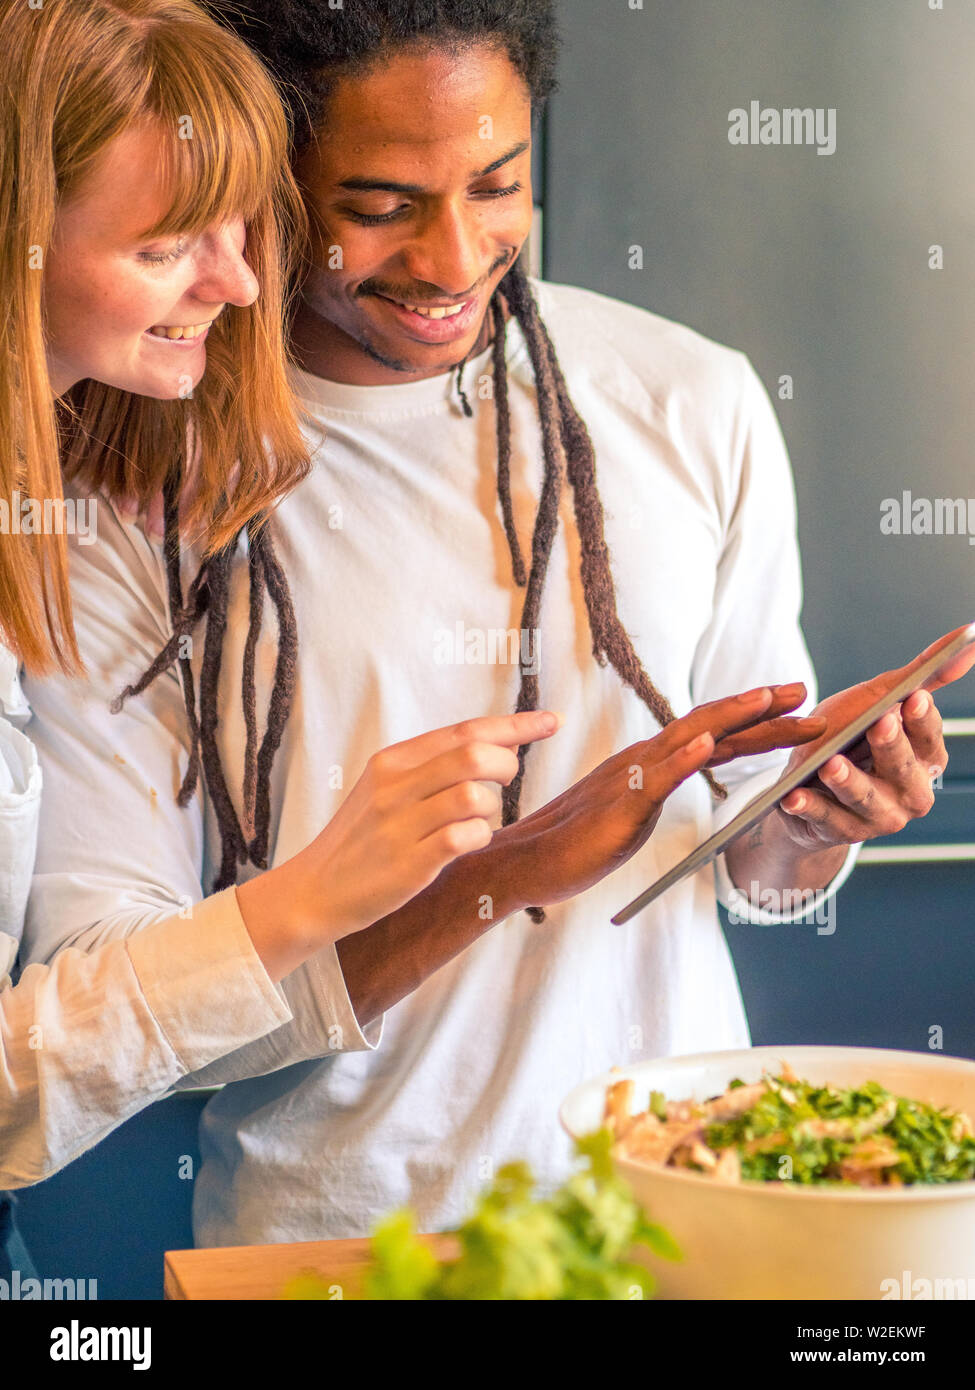 Interracial couple formed by African and Caucasian prepare a salad together with the help of their cell phone Stock Photo